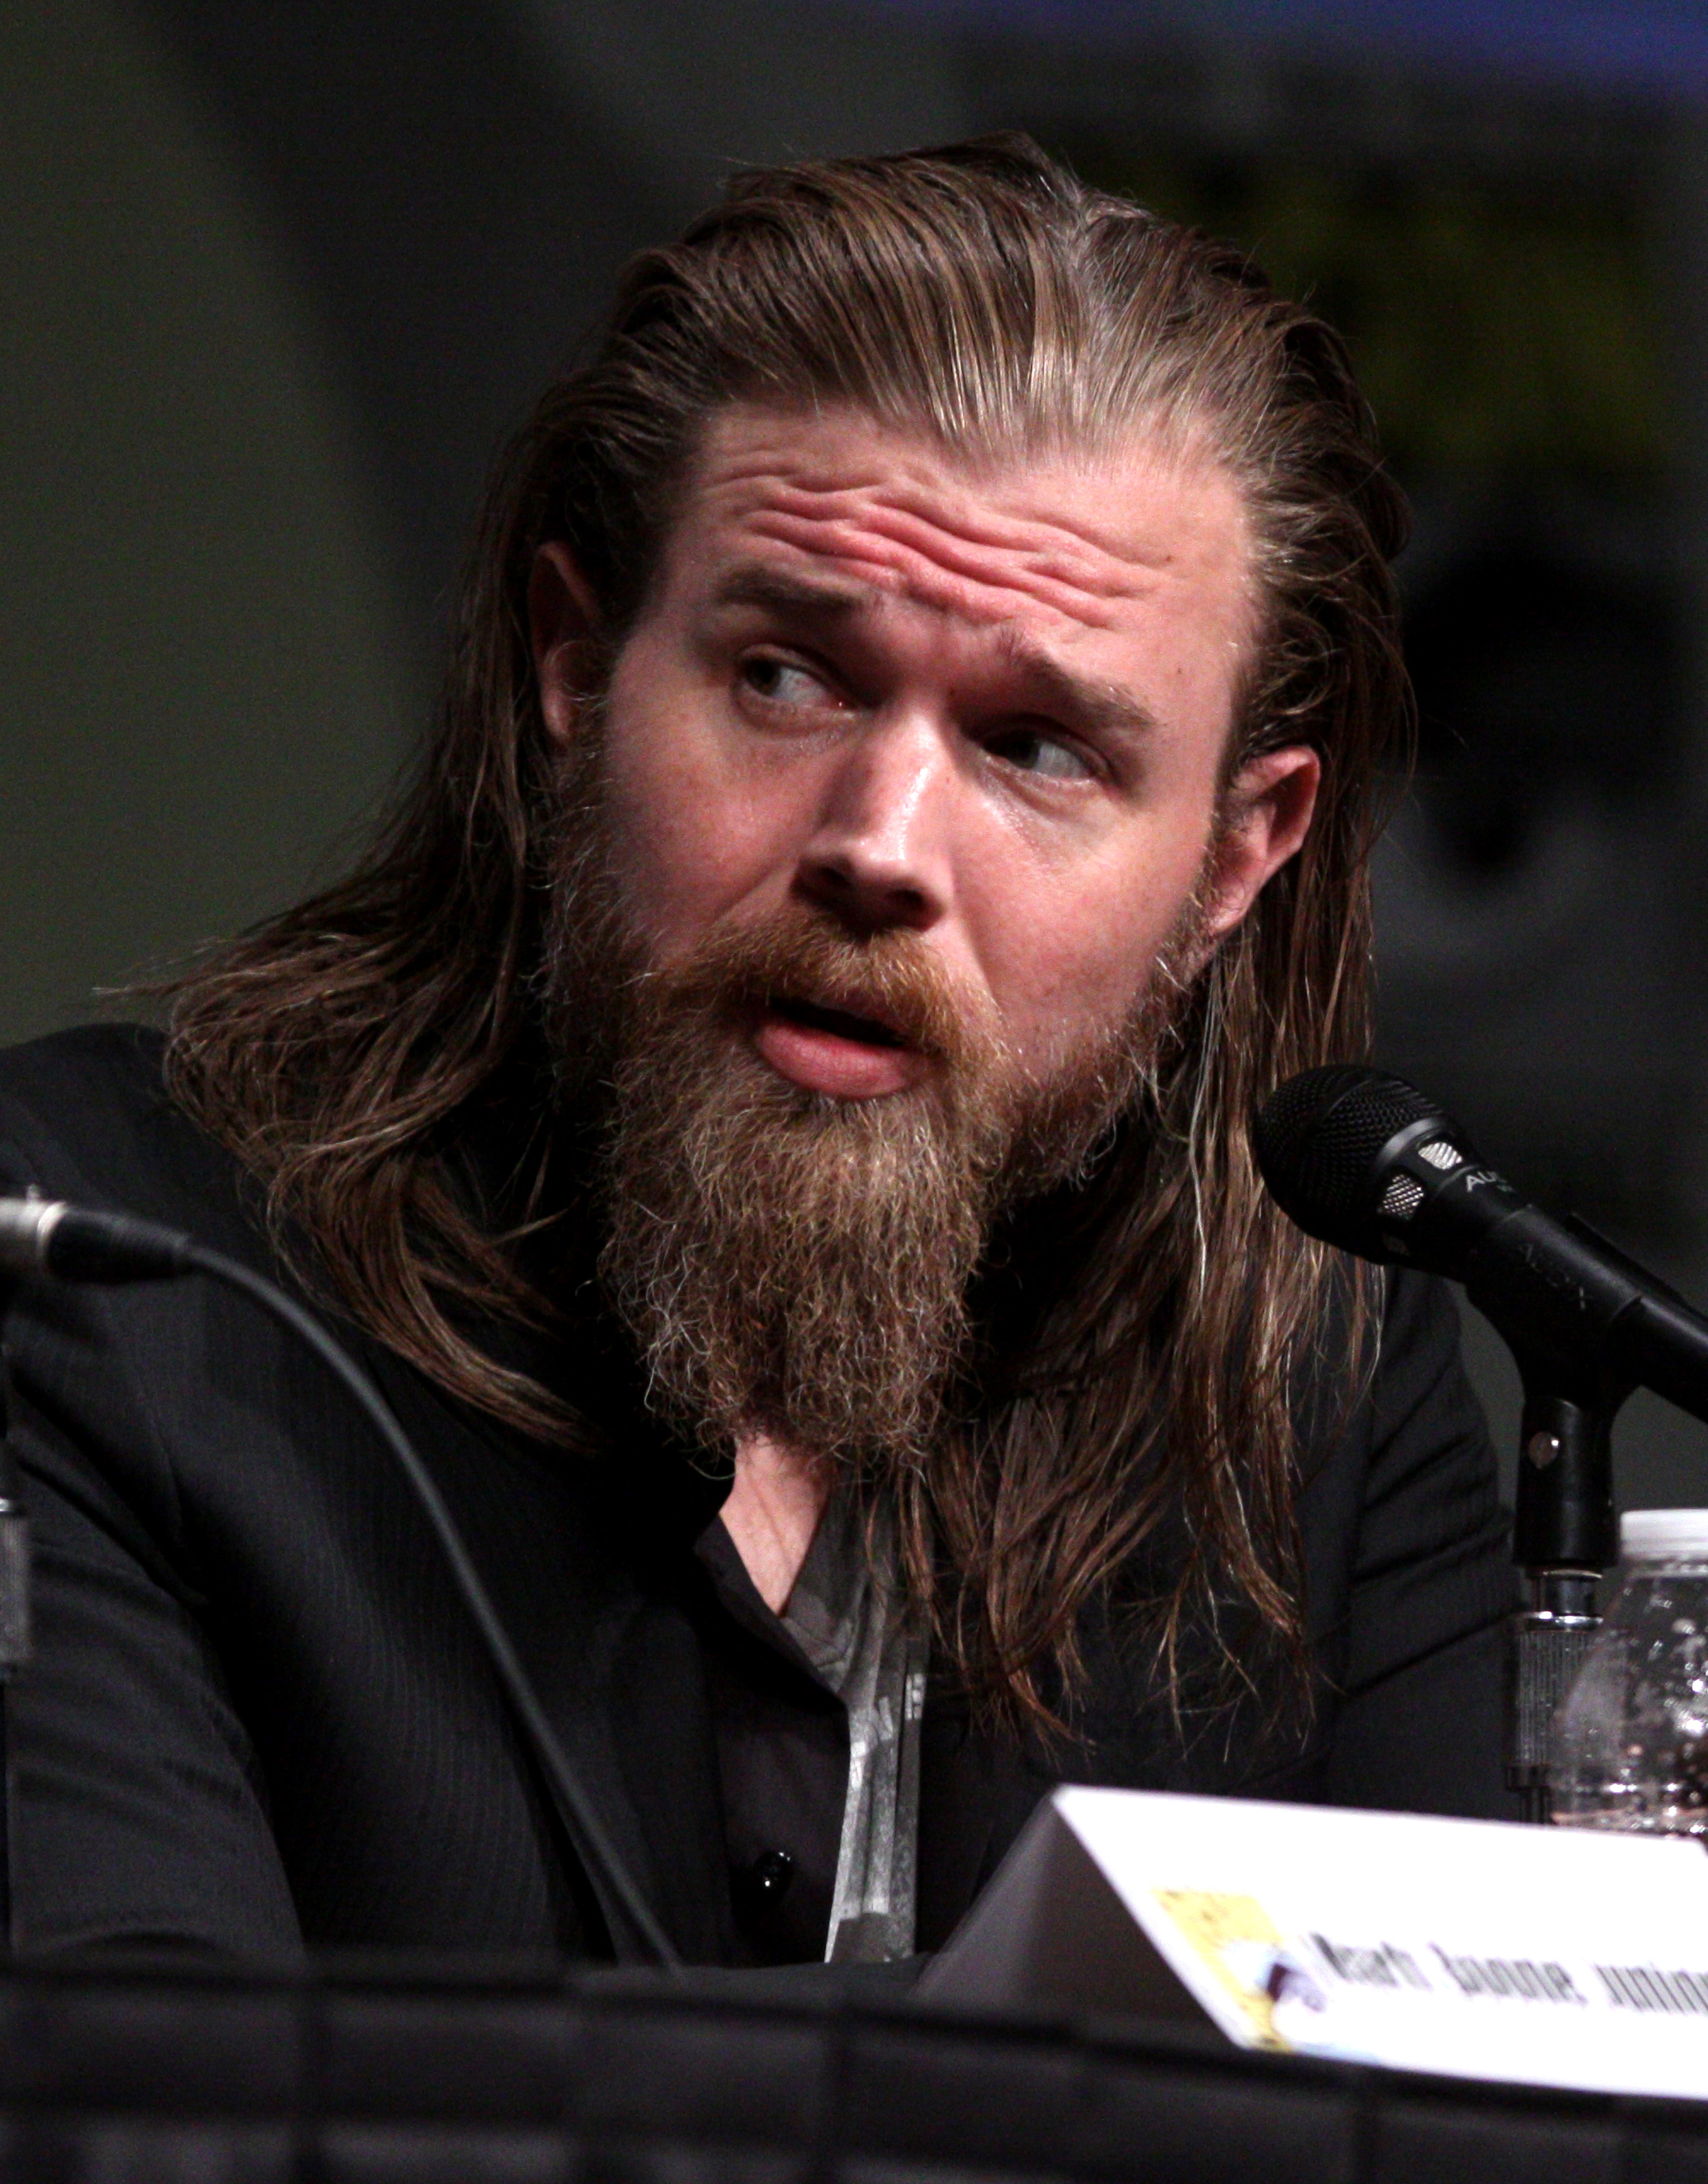 The 41-year old son of father Rick Hurst  and mother Candace Kaniecki, 193 cm tall Ryan Hurst in 2017 photo